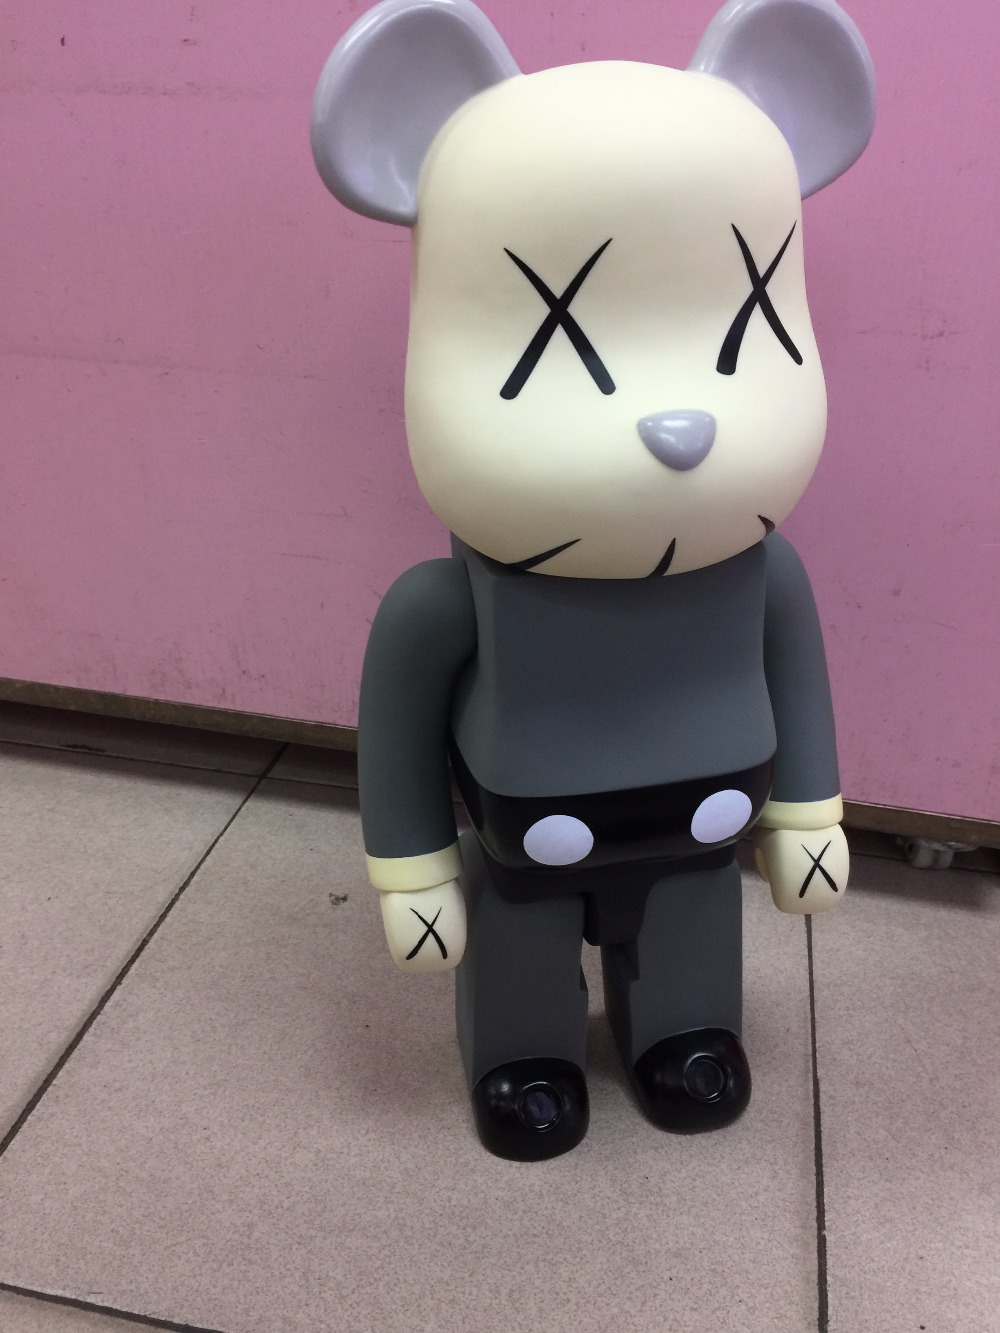 700% 52CM Kaws bearbrick bear@brick Cos Kaws Bear Doll  PVC Action Figure Toy Art Work Great Gift for Friends  juguetes Figures hot selling oversize 1000% bearbrick luxury lady ch be rbrick medicom toy 52cm zy503